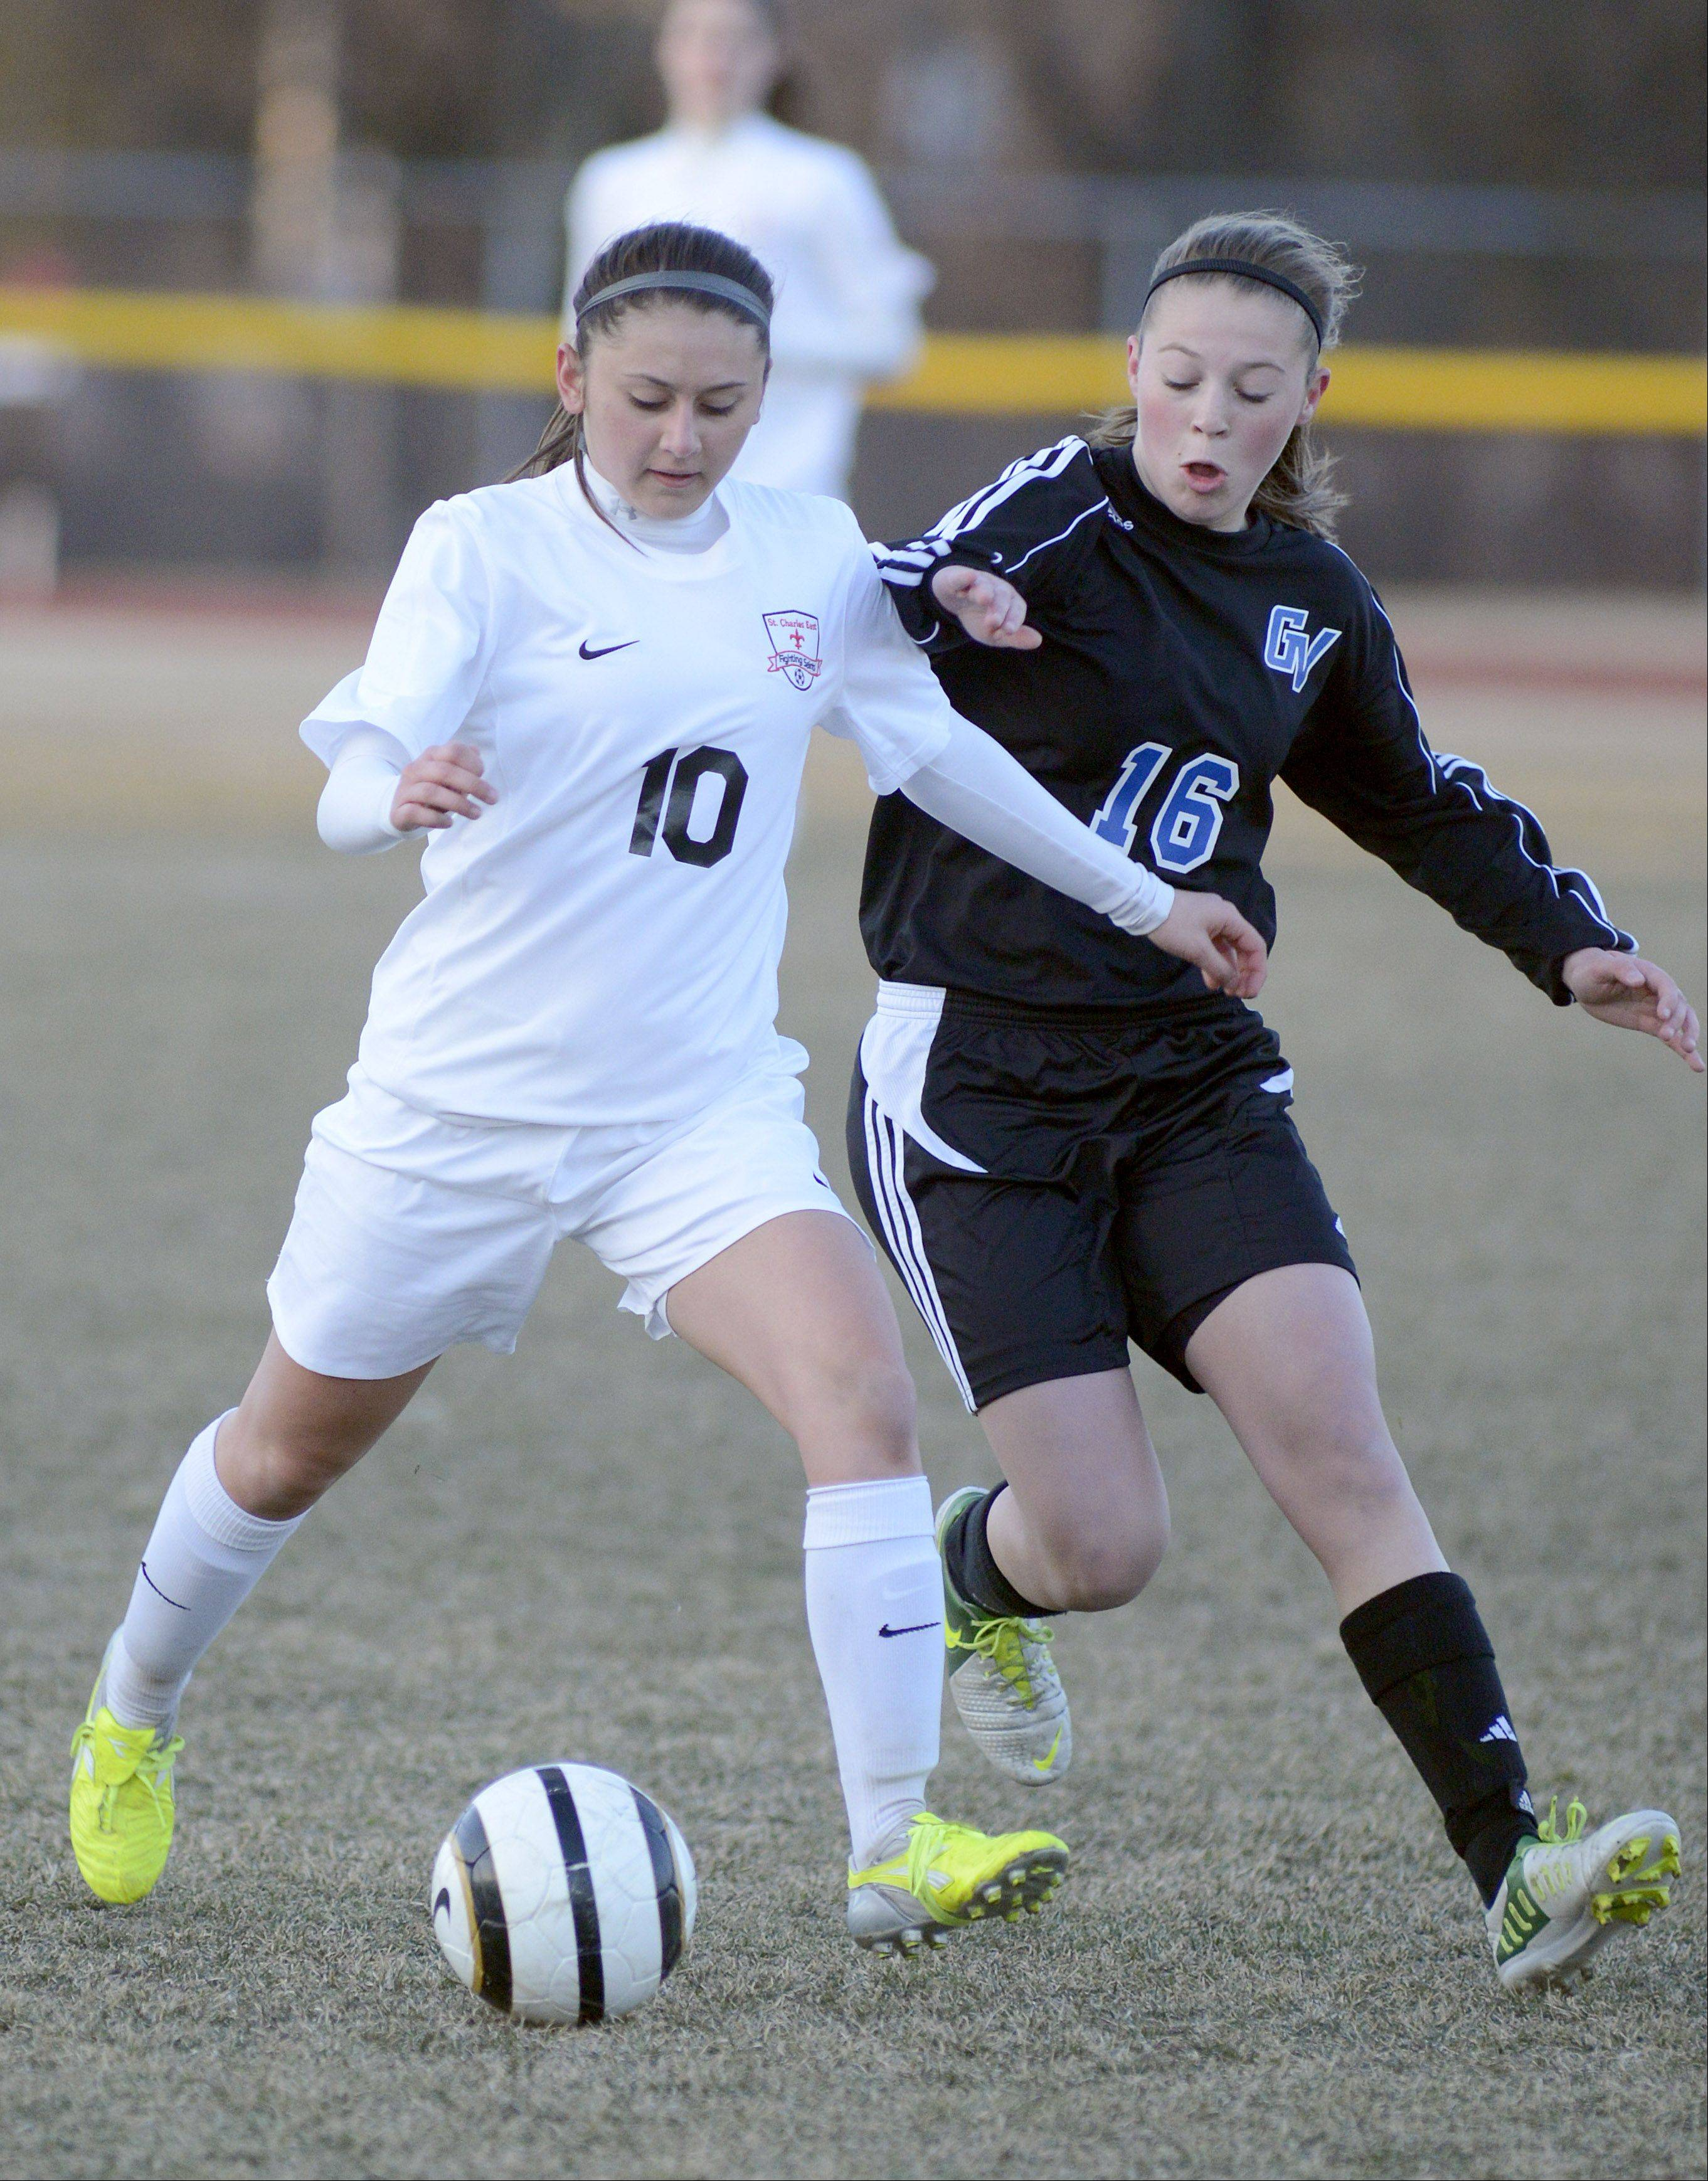 St. Charles East's Liana Imbrogno and Geneva's Maureen Kozlow battle for the ball in the first half on Tuesday, April 2.